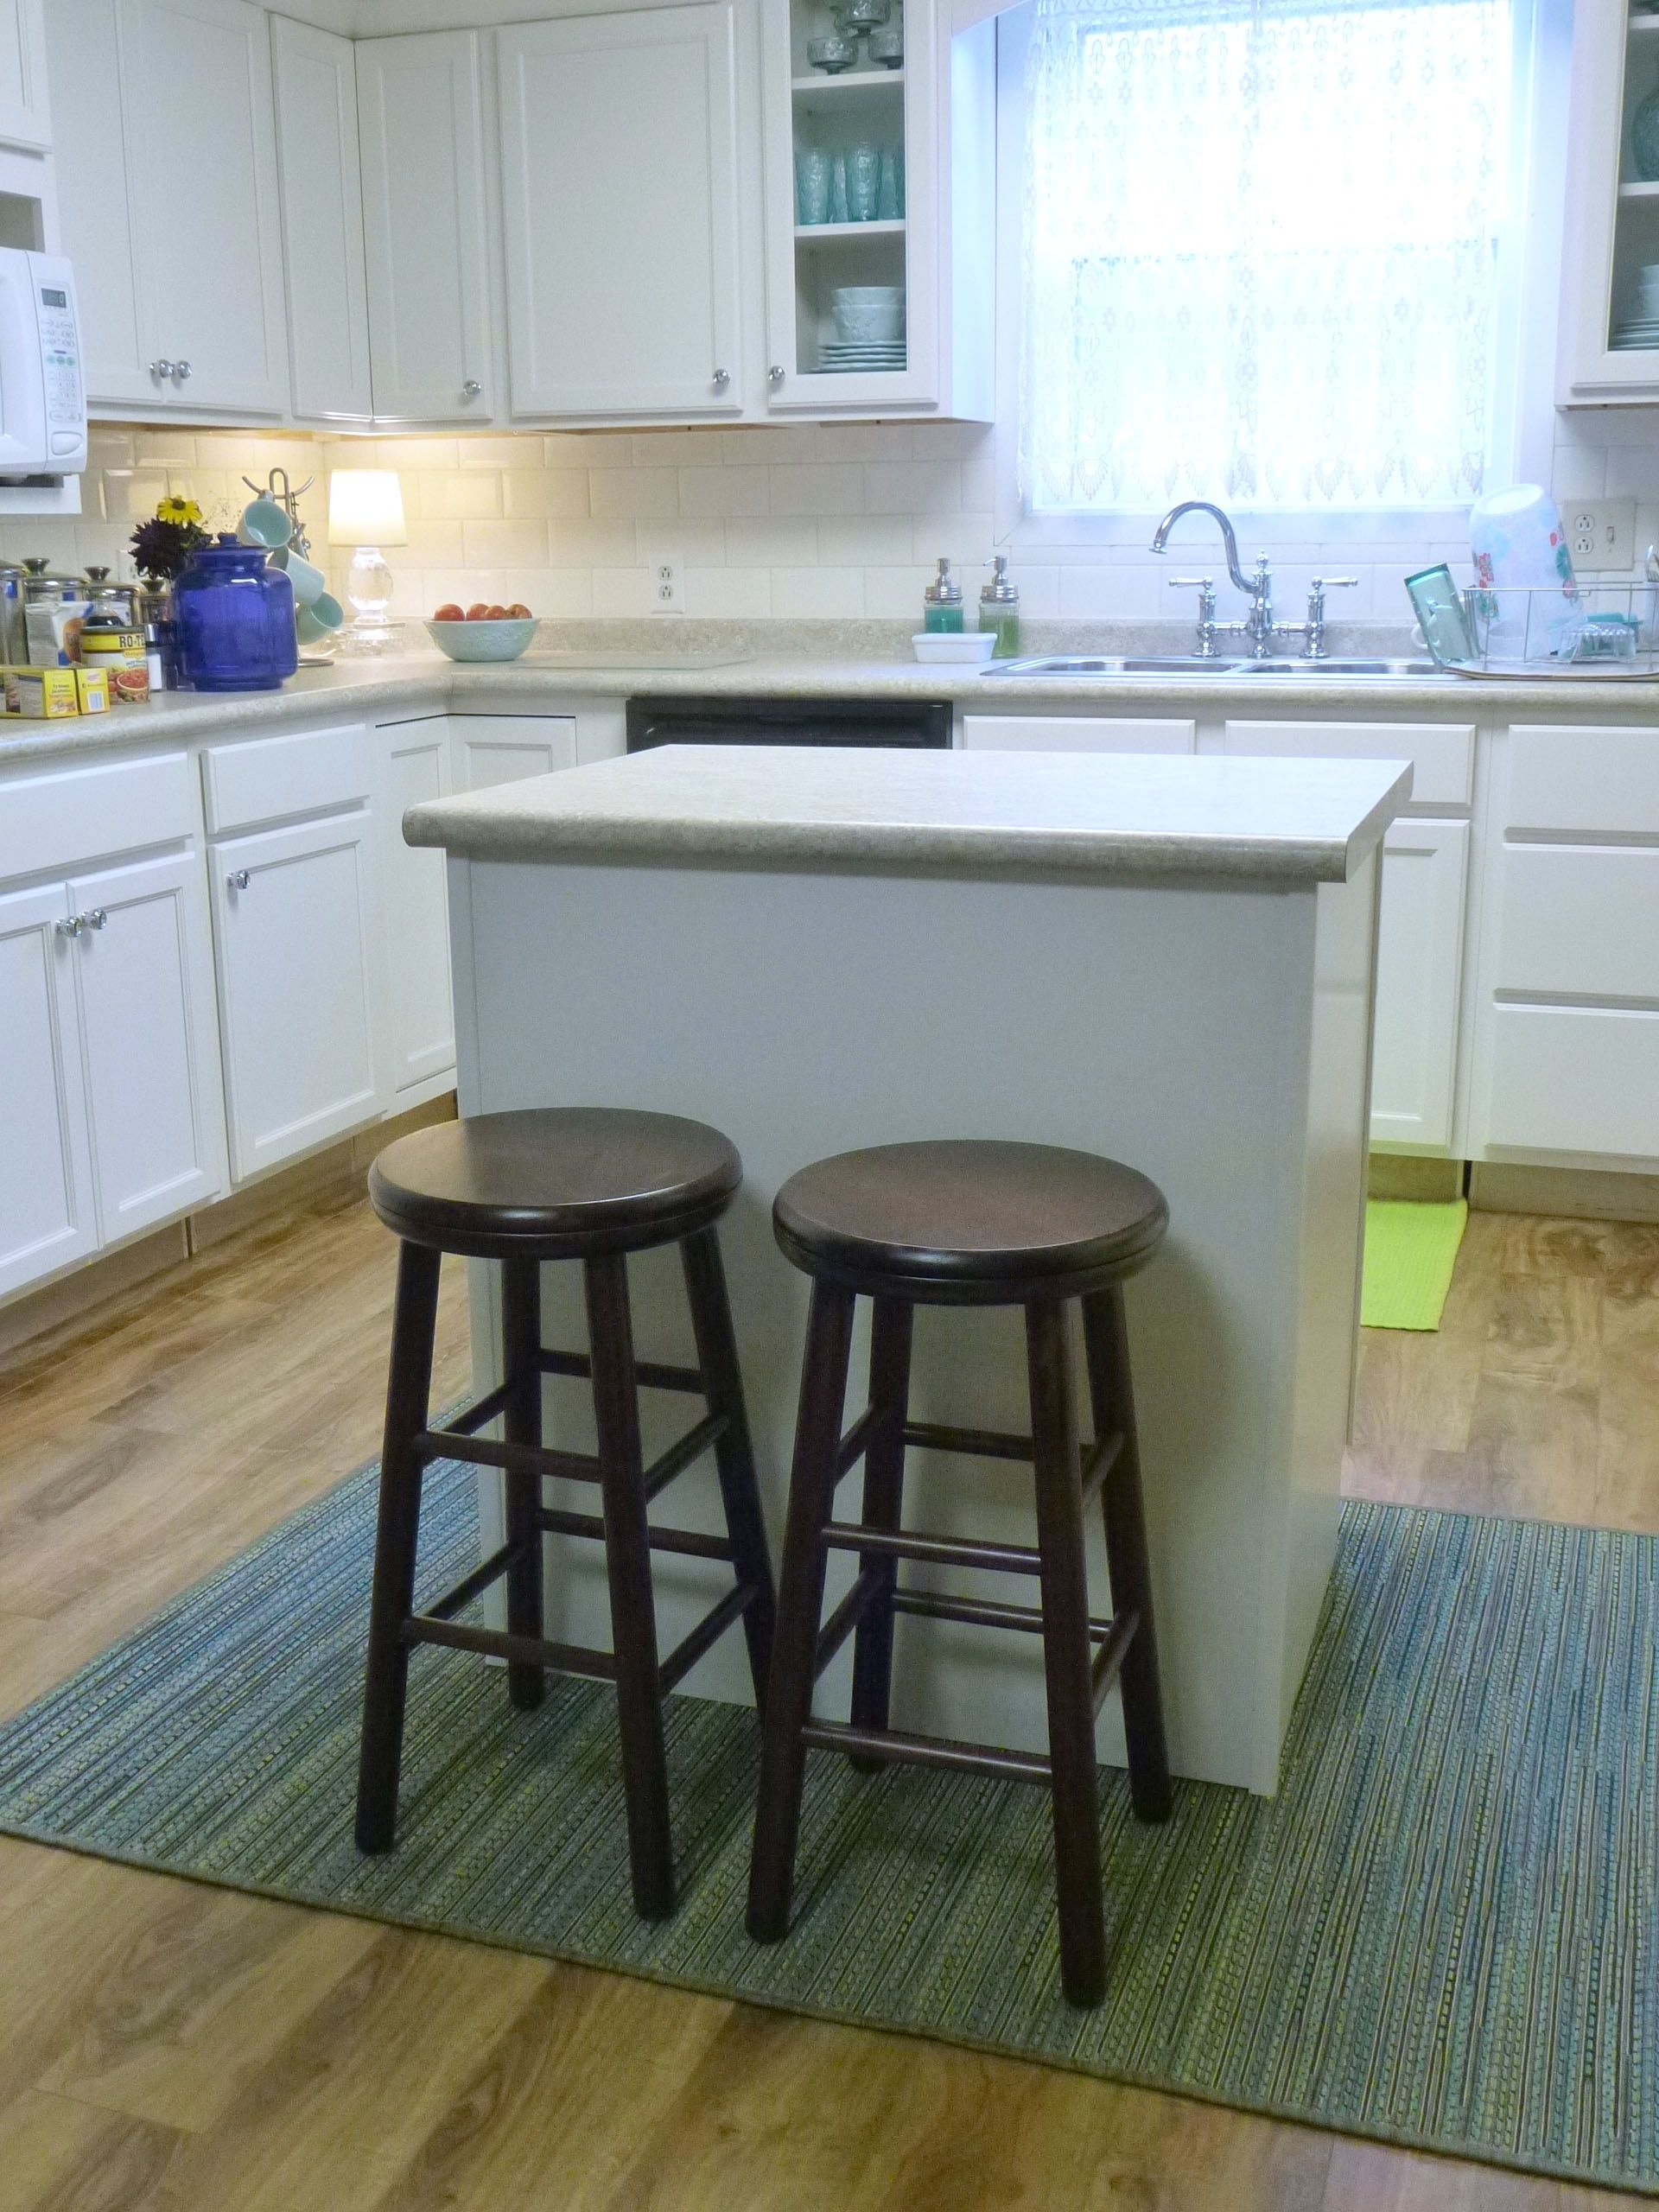 Set of two 24-inch counter height stools, espresso finish, tops ...